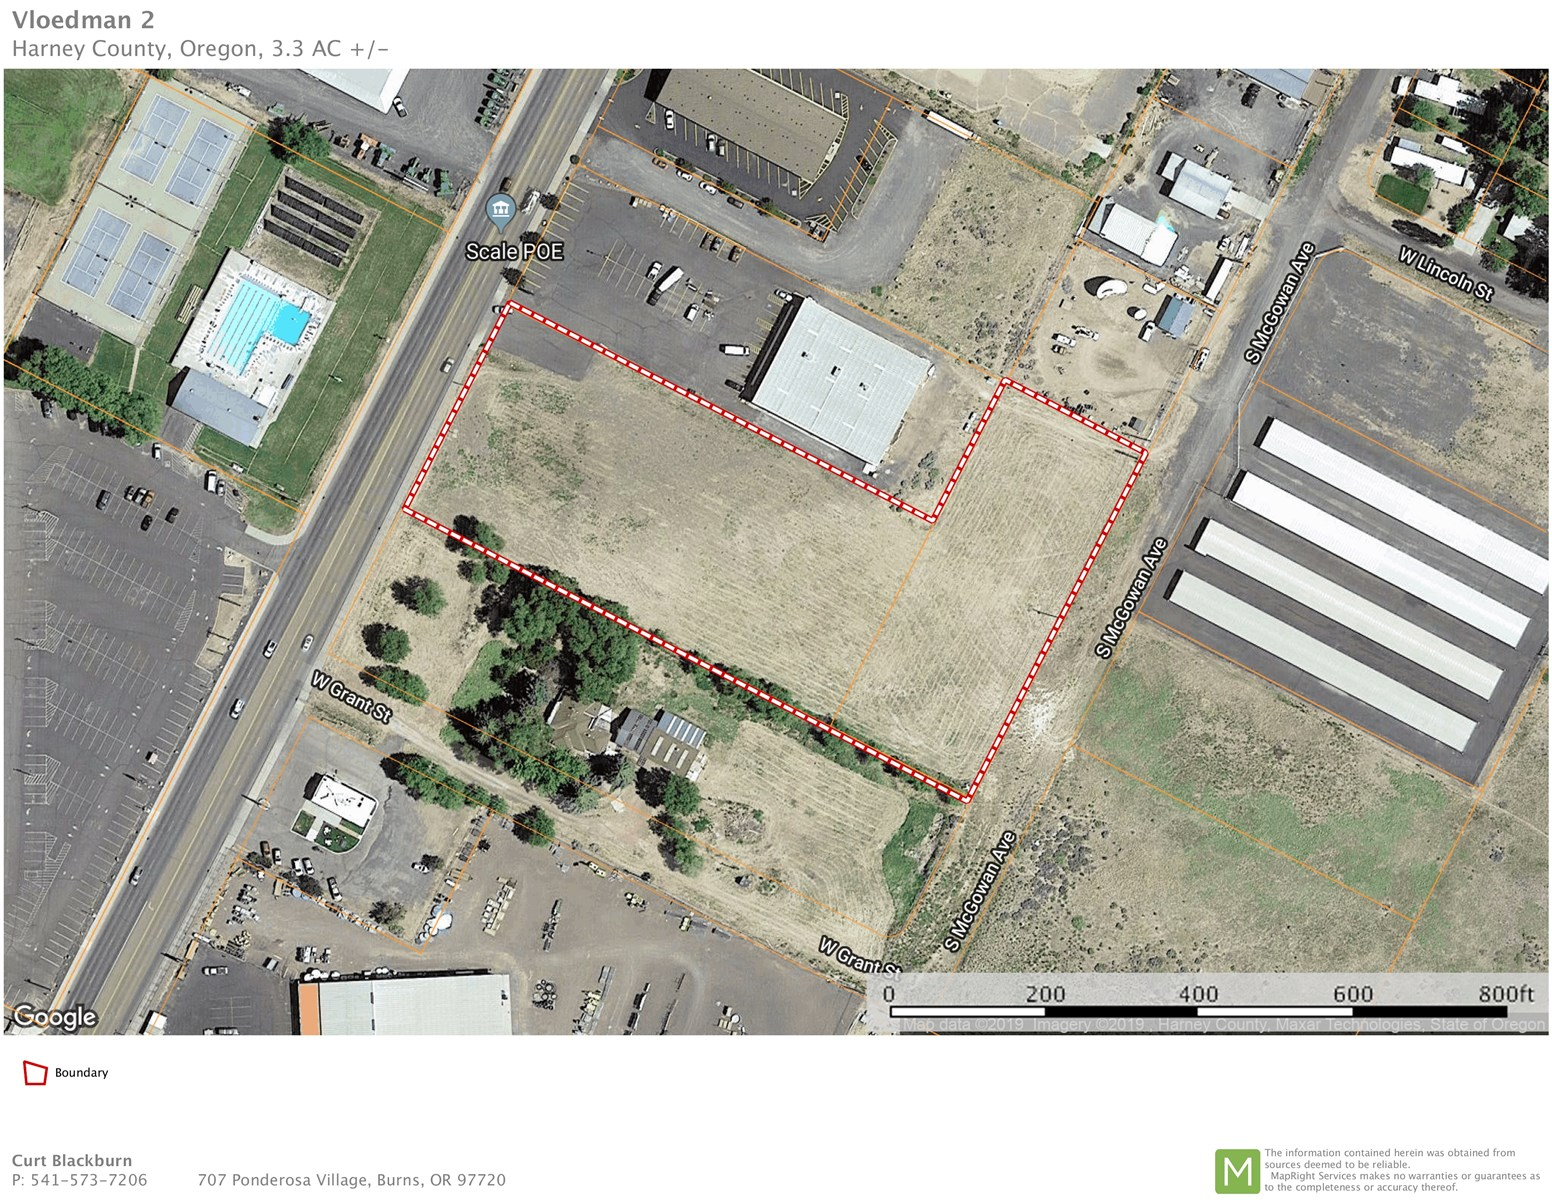 BURNS, OR - TWO COMMERCIAL LOTS - 3.52 ACRES-GREAT LOCATION